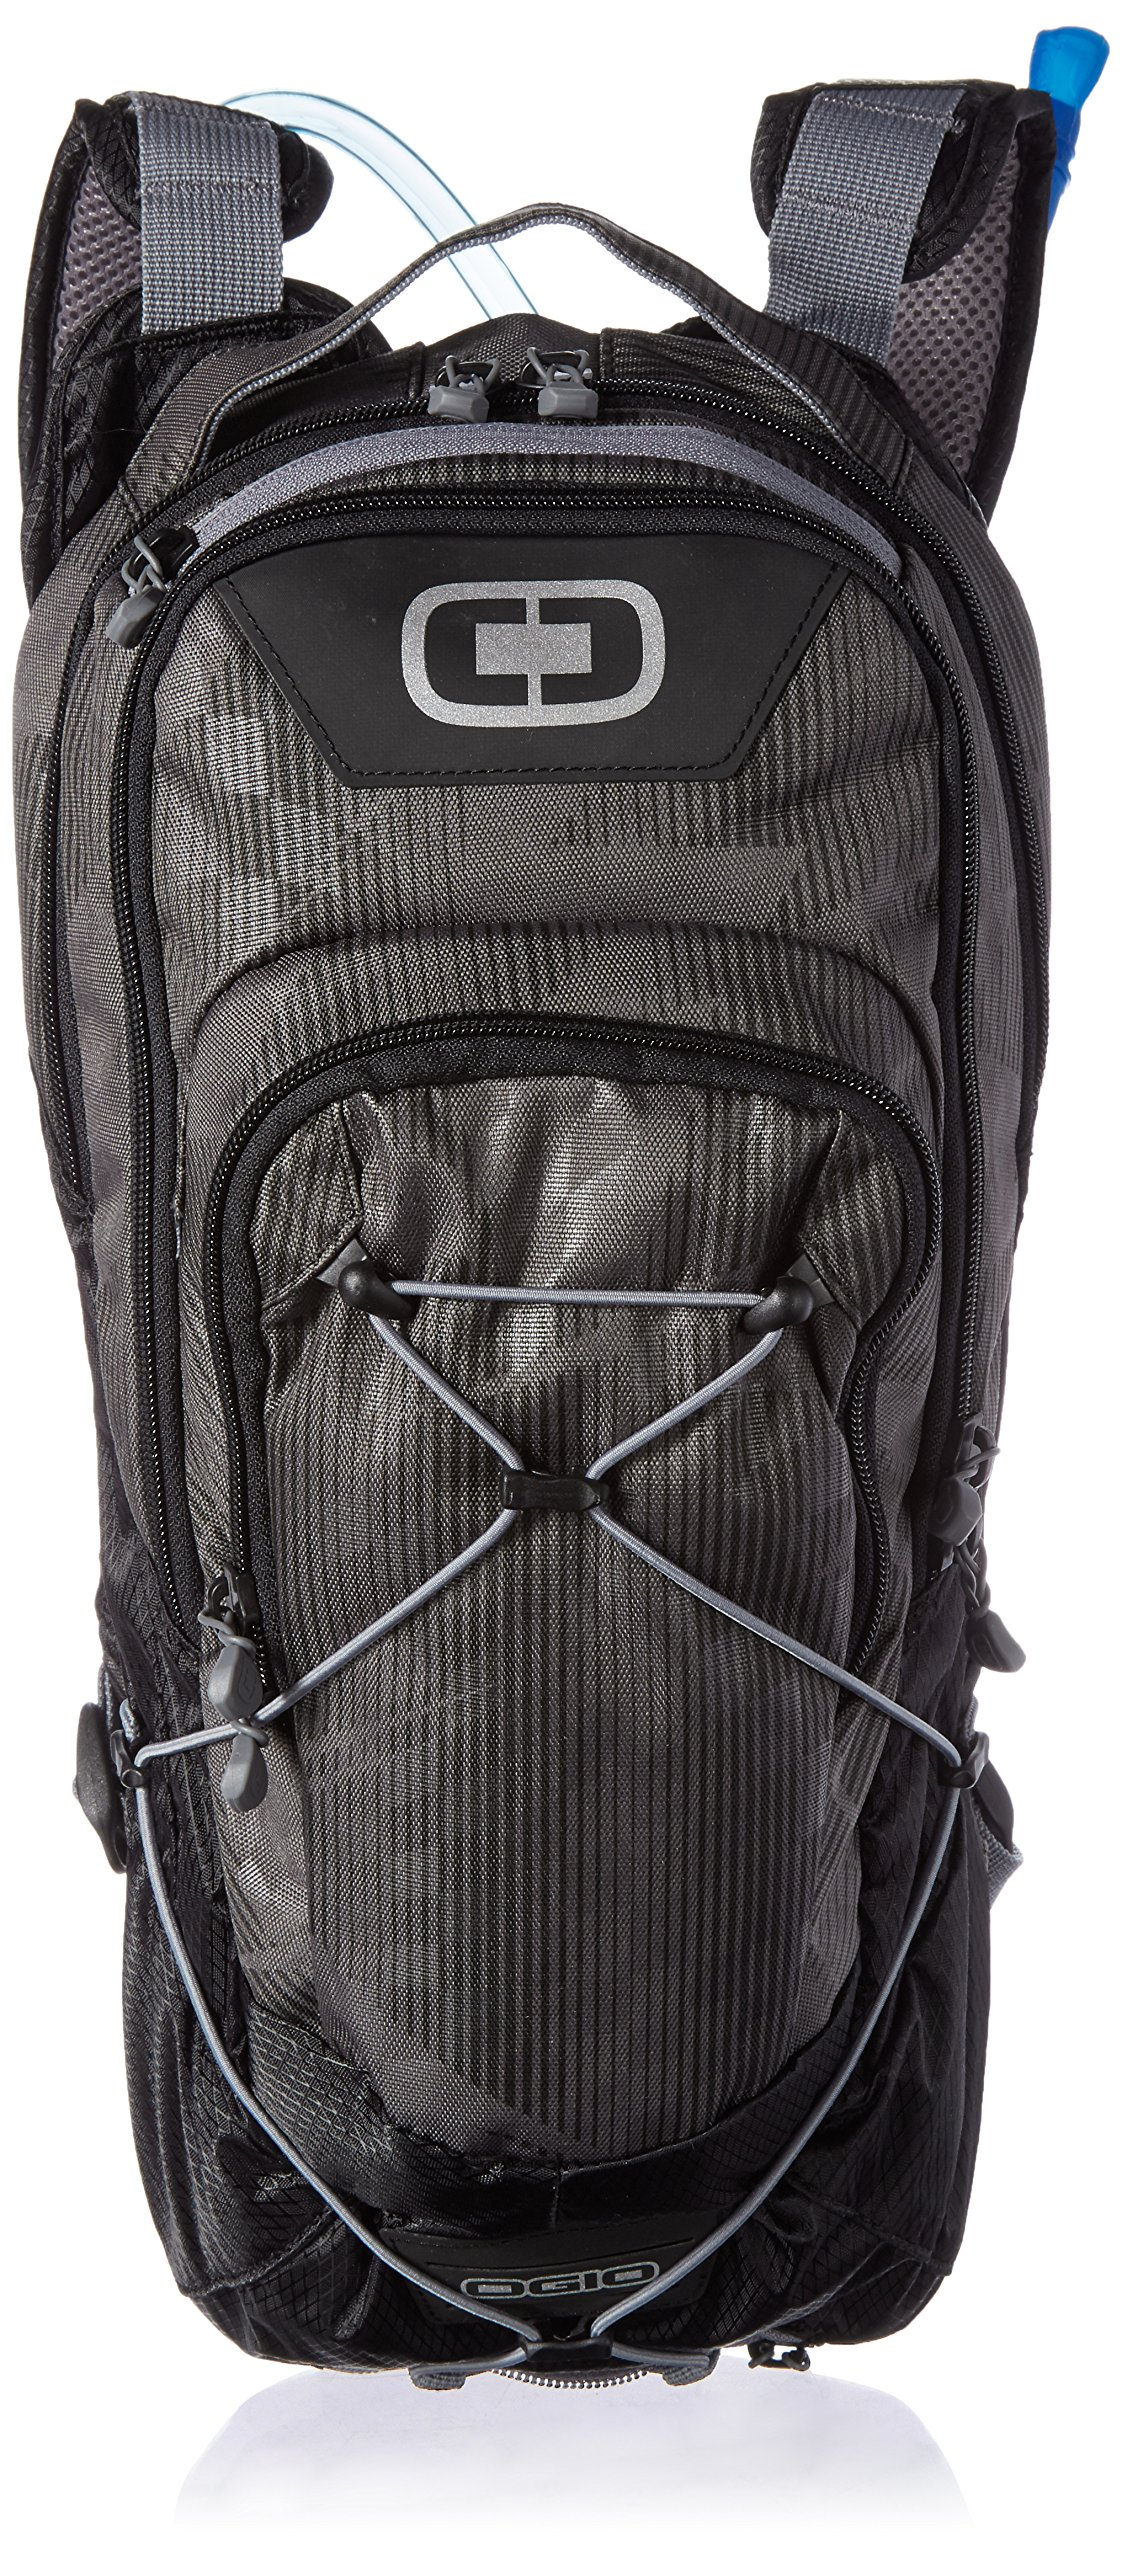 ogio 122005.03 Baja 70 oz./2 Liter Hydration Pack - Stealth Black by OGIO